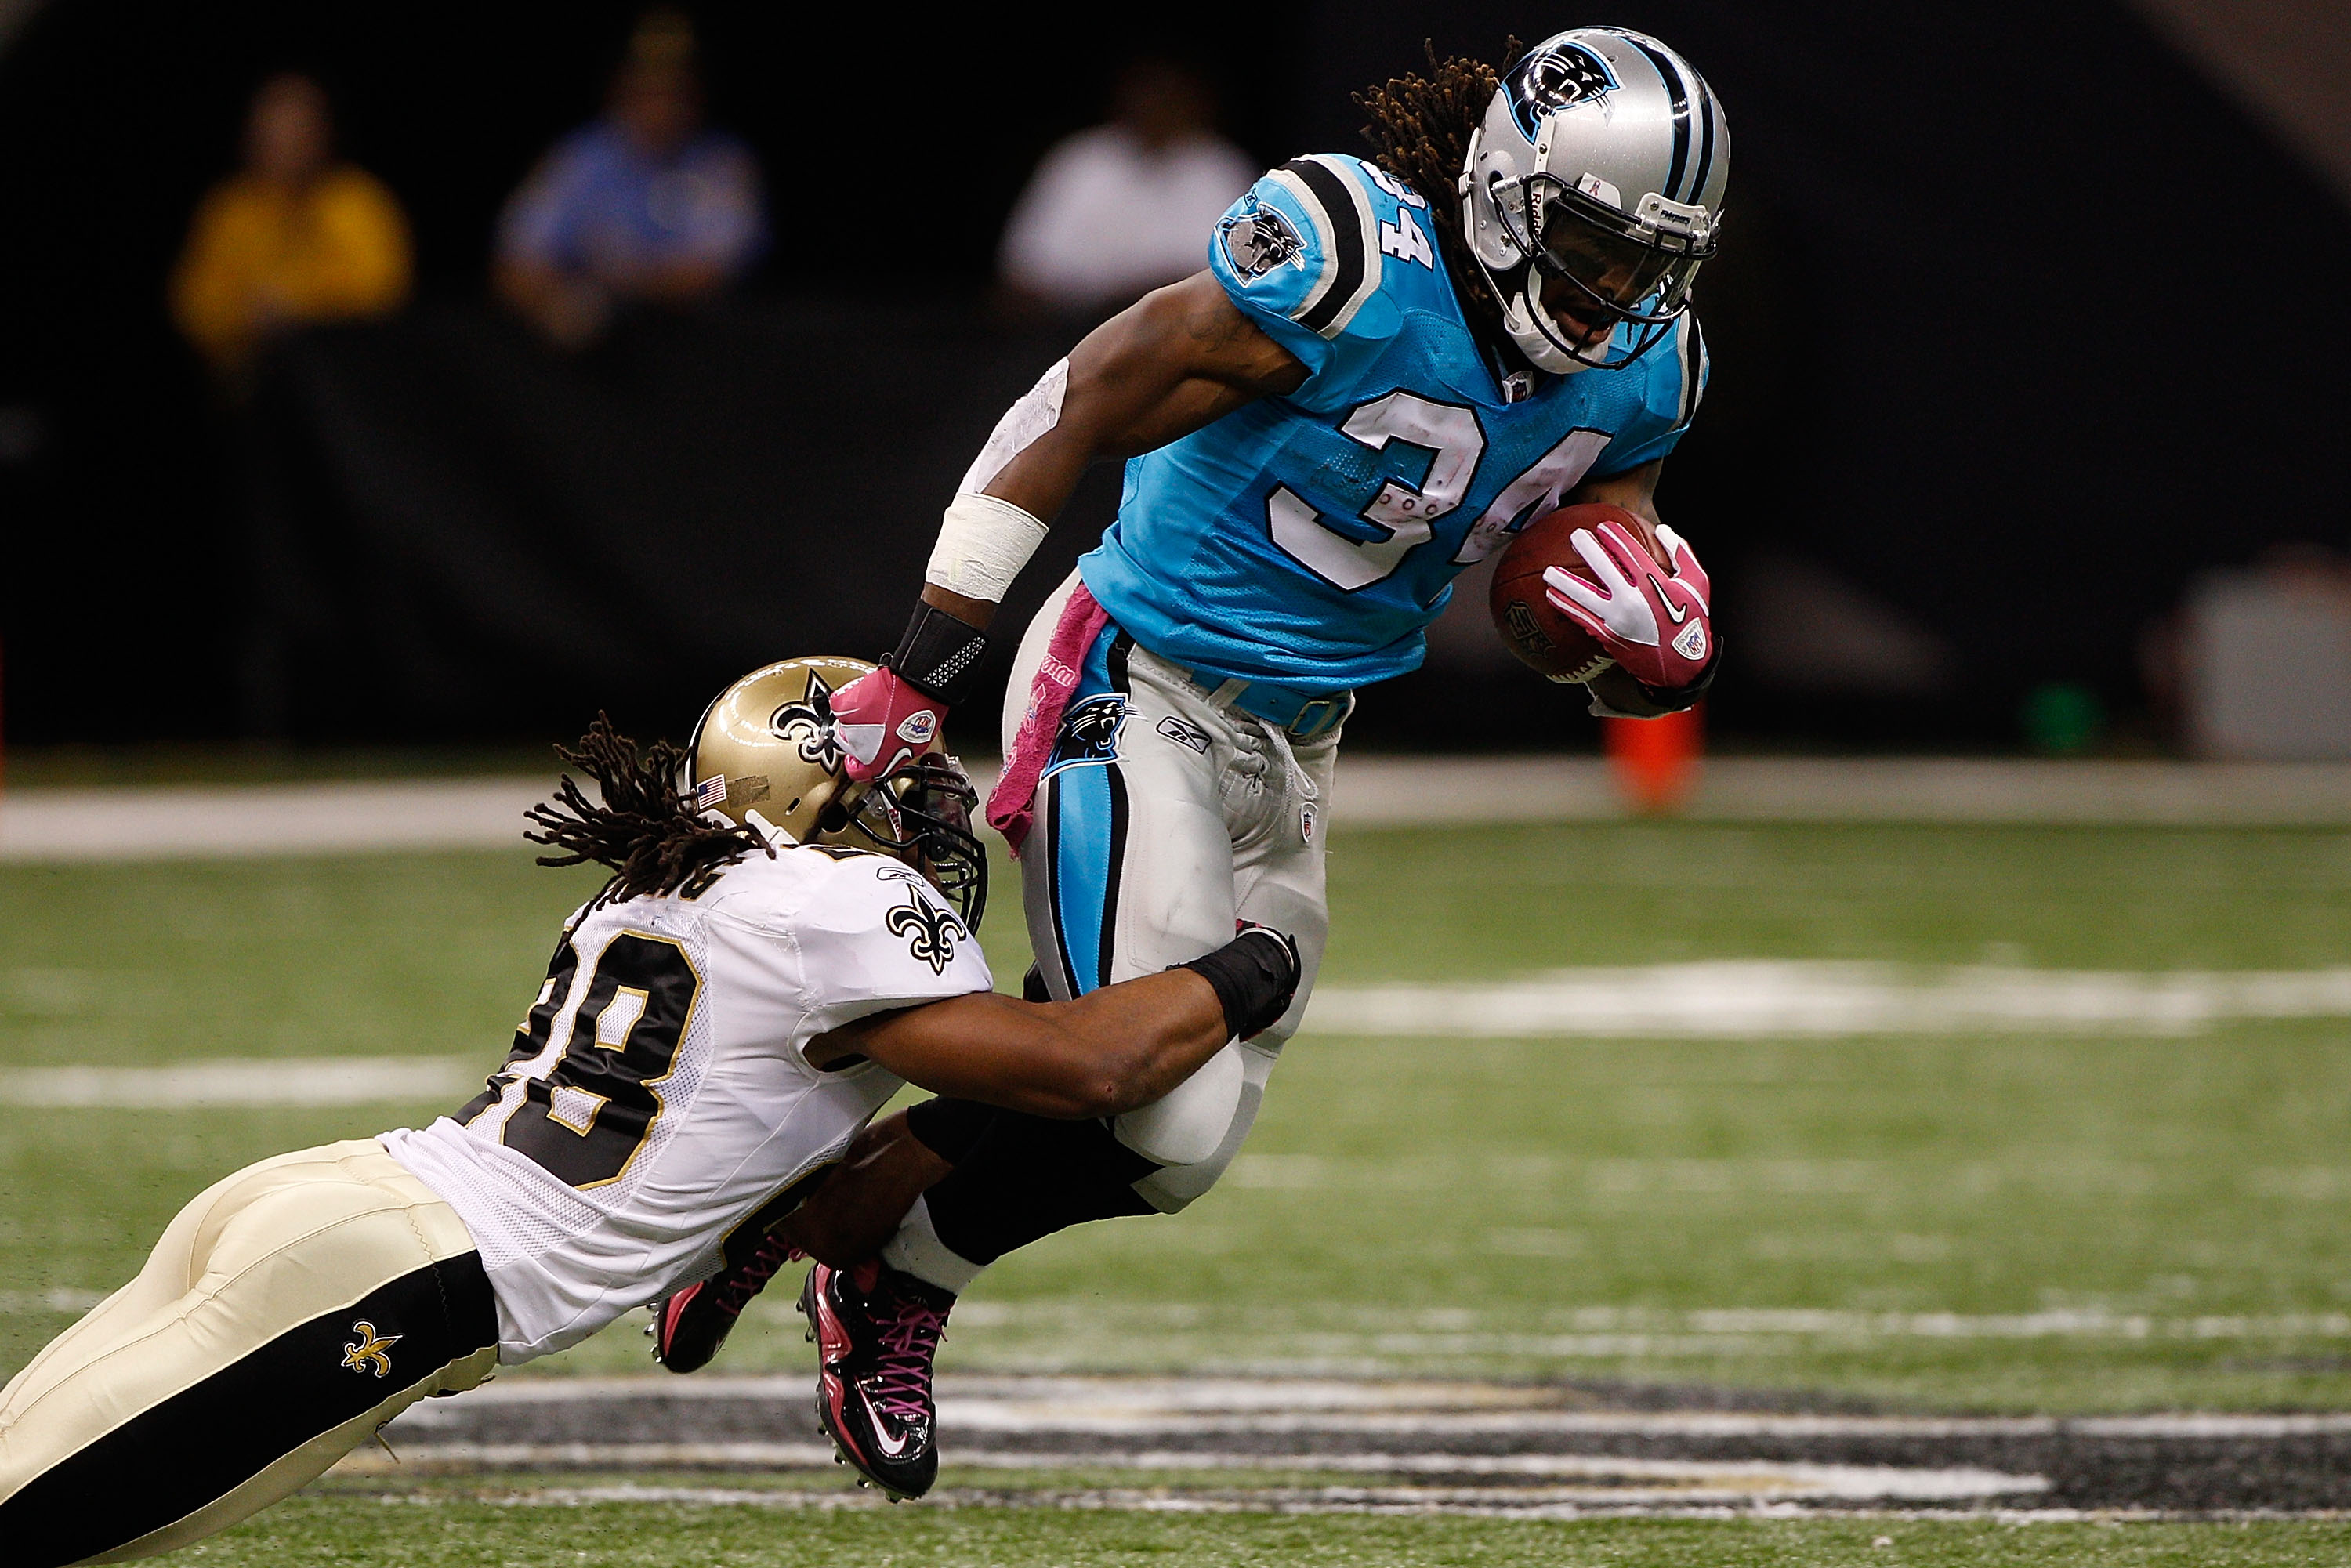 NEW ORLEANS - OCTOBER 03:  Usama Young #28 of the New Orleans Saints tackles DeAngelo Williams #34 of the Carolina Panthers at the Louisiana Superdome on October 3, 2010 in New Orleans, Louisiana.  (Photo by Chris Graythen/Getty Images)